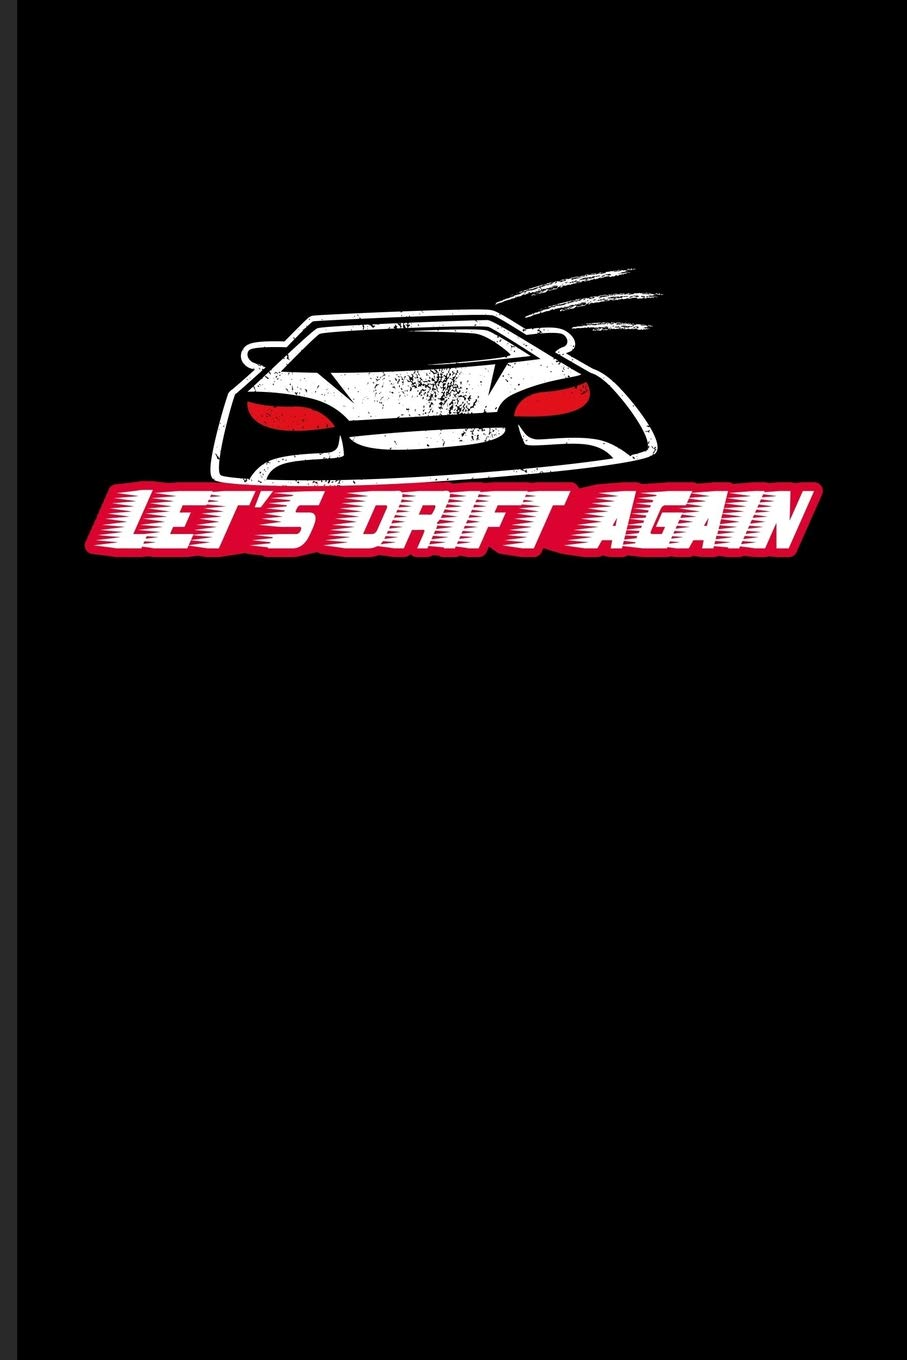 Lets Drift Again Funny Car Quotes Journal For Mechanics